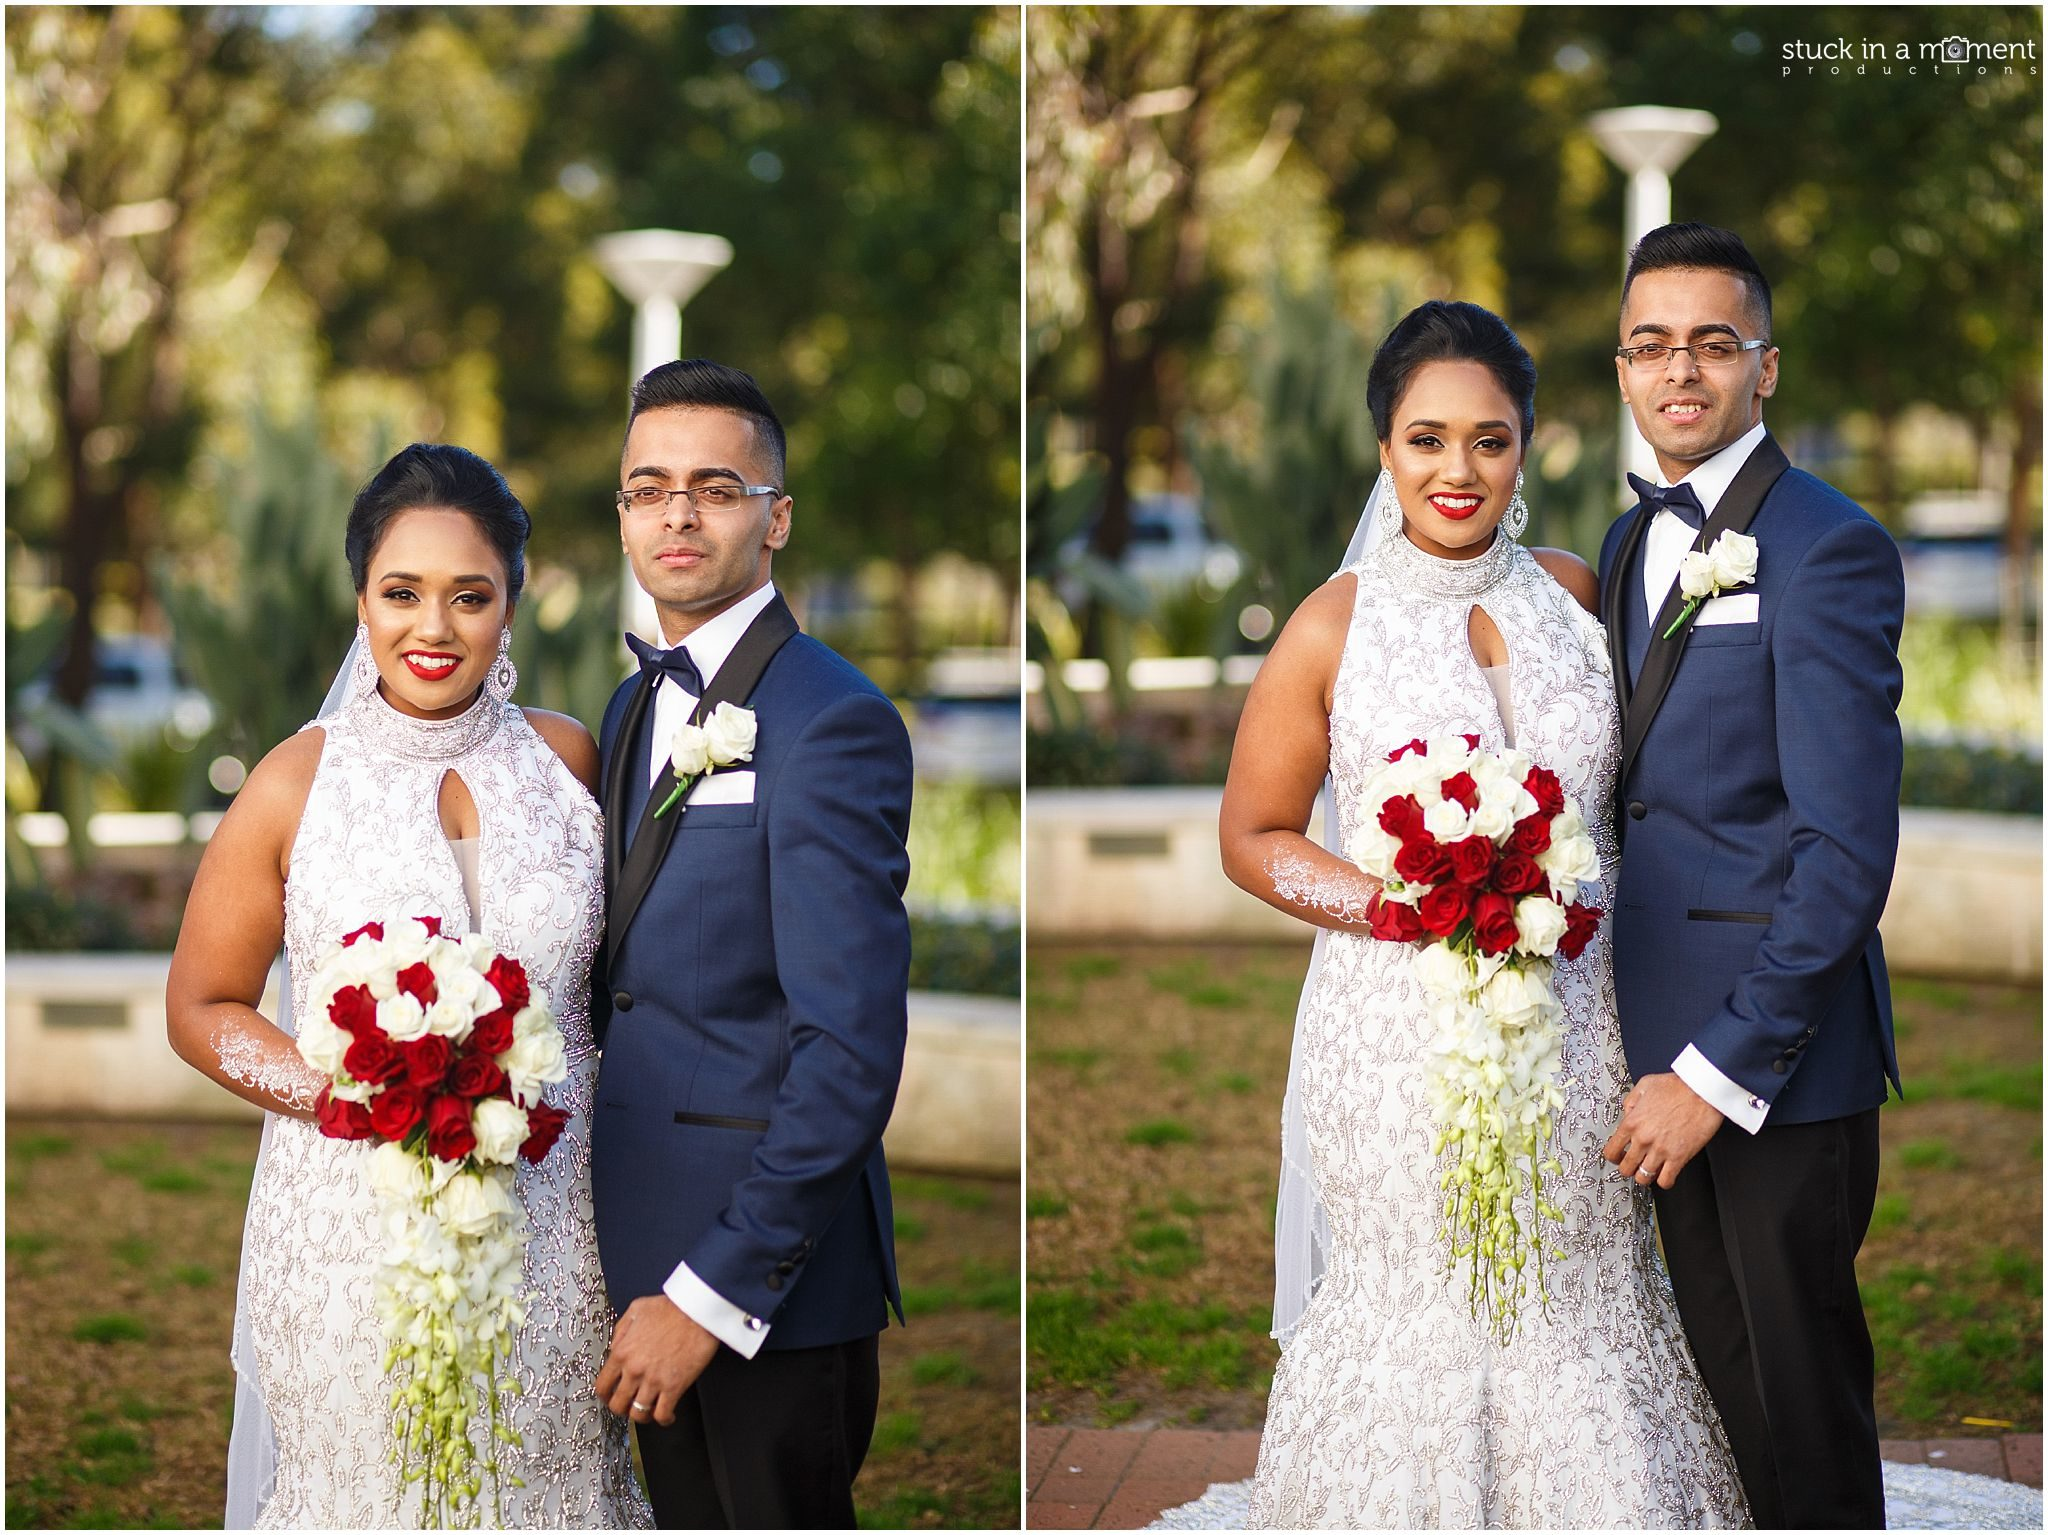 sydney wedding photographer videographer clarence house wedding